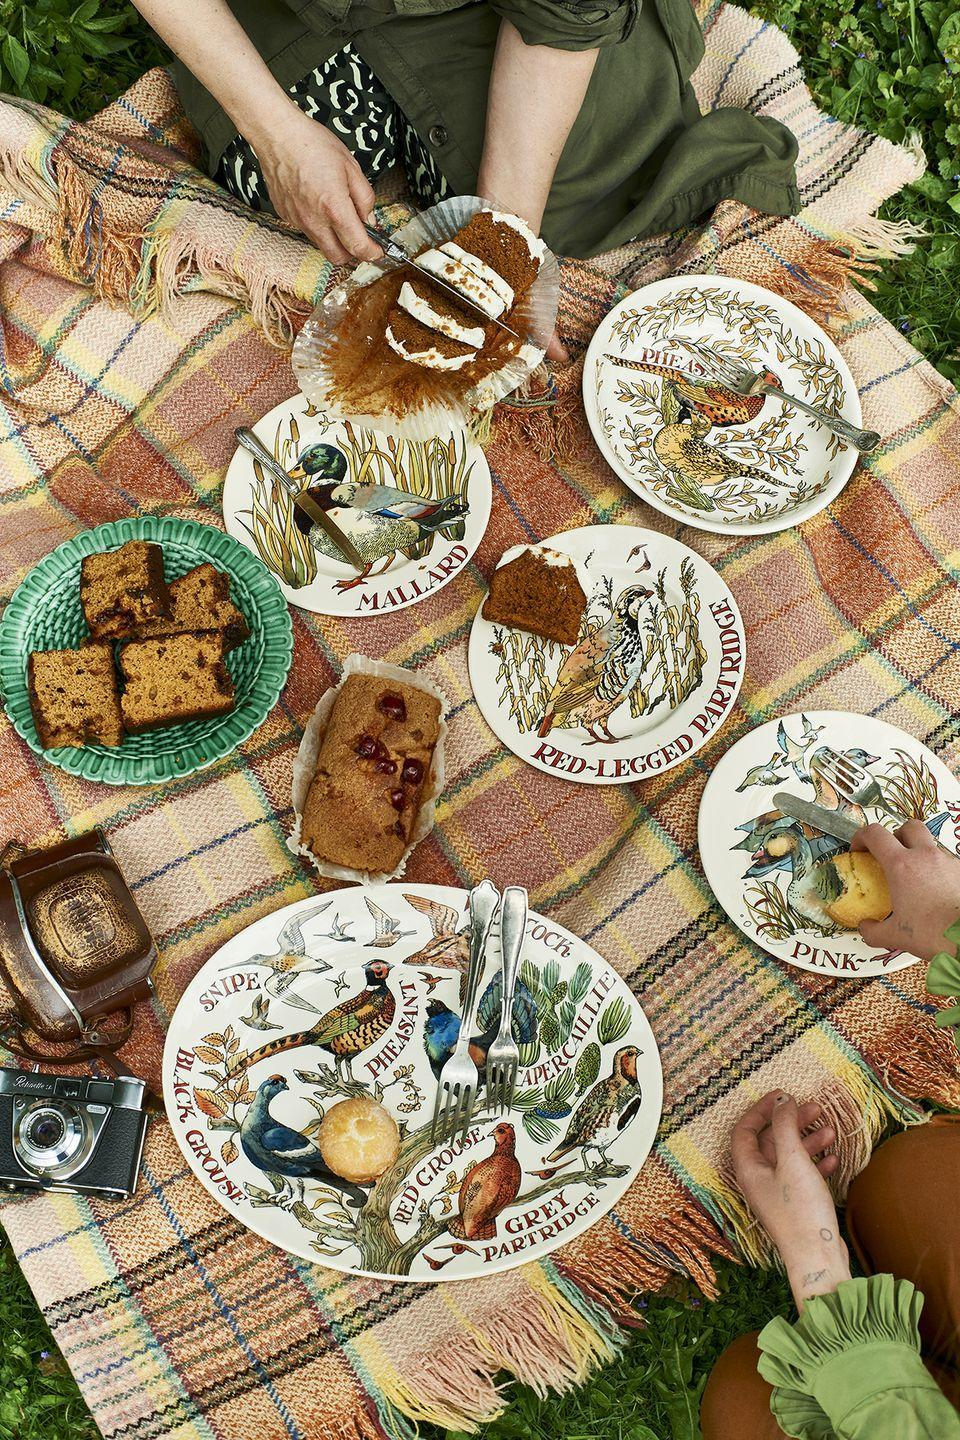 """<p>The autumn countryside is at the heart of the new range; expect Game Birds such as pheasants, ducks and partridges printed on plates, teapots, mugs, jugs and platters. We're certain this will make the perfect Christmas gift...</p><p><a class=""""link rapid-noclick-resp"""" href=""""https://go.redirectingat.com?id=127X1599956&url=https%3A%2F%2Fwww.emmabridgewater.co.uk%2Fcollections%2Fnew&sref=https%3A%2F%2Fwww.housebeautiful.com%2Fuk%2Flifestyle%2Fshopping%2Fg37527696%2Femma-bridgewater-autumn-range%2F"""" rel=""""nofollow noopener"""" target=""""_blank"""" data-ylk=""""slk:SHOP THE RANGE"""">SHOP THE RANGE</a></p>"""